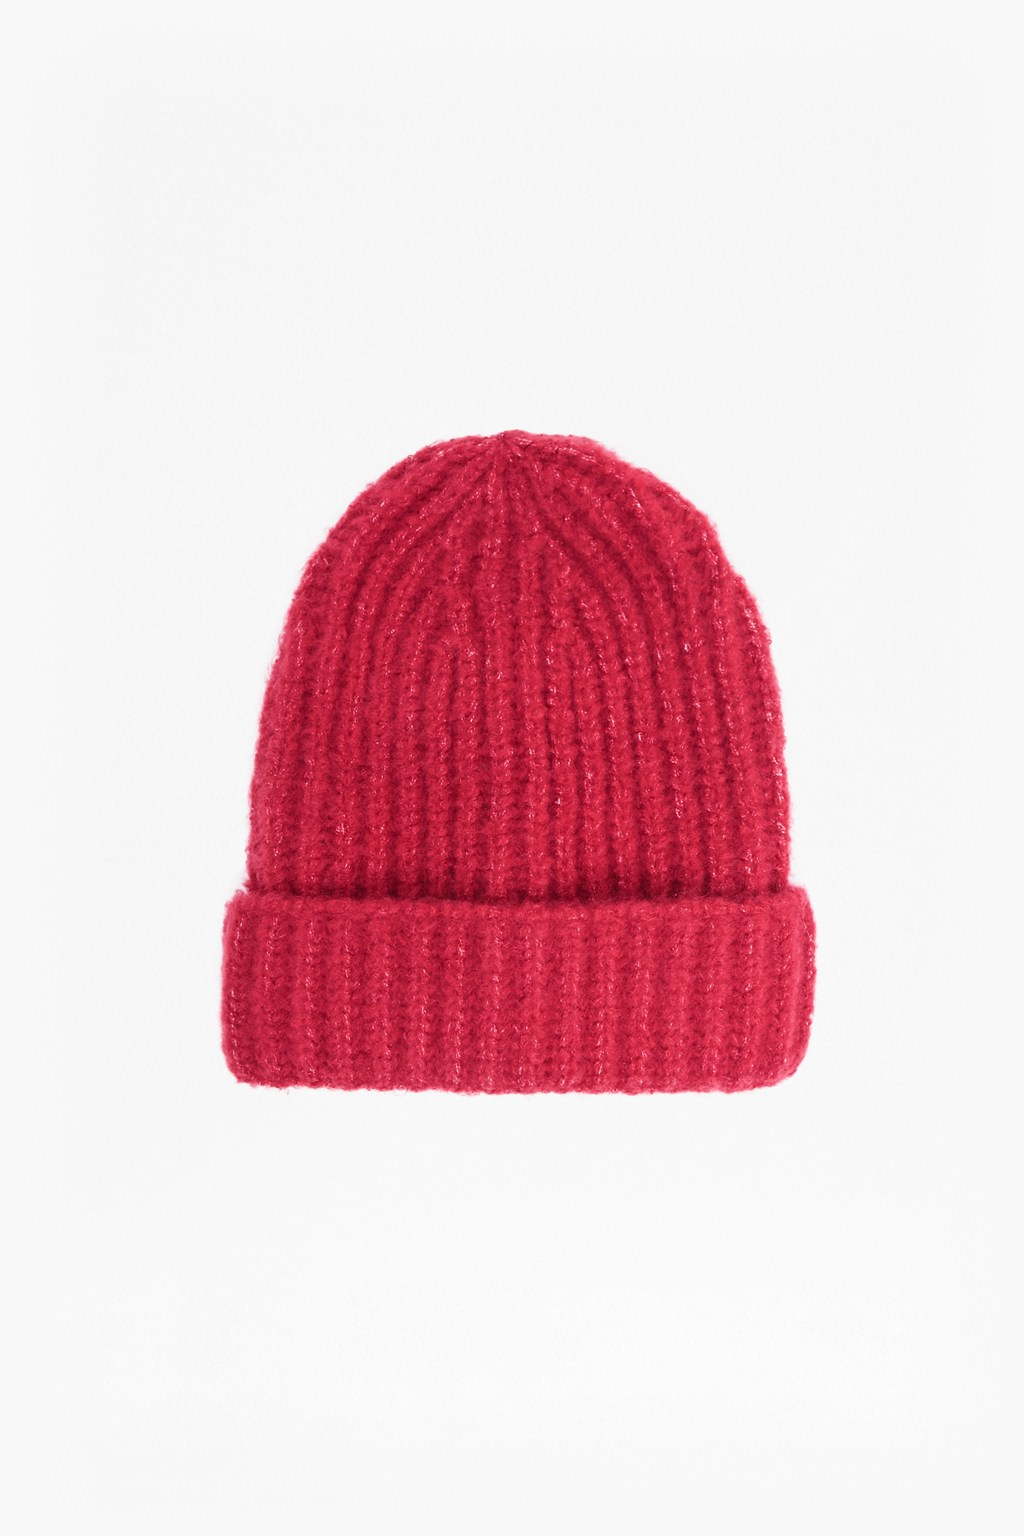 Ribbed Knit Beanie Hat  337bec4f540